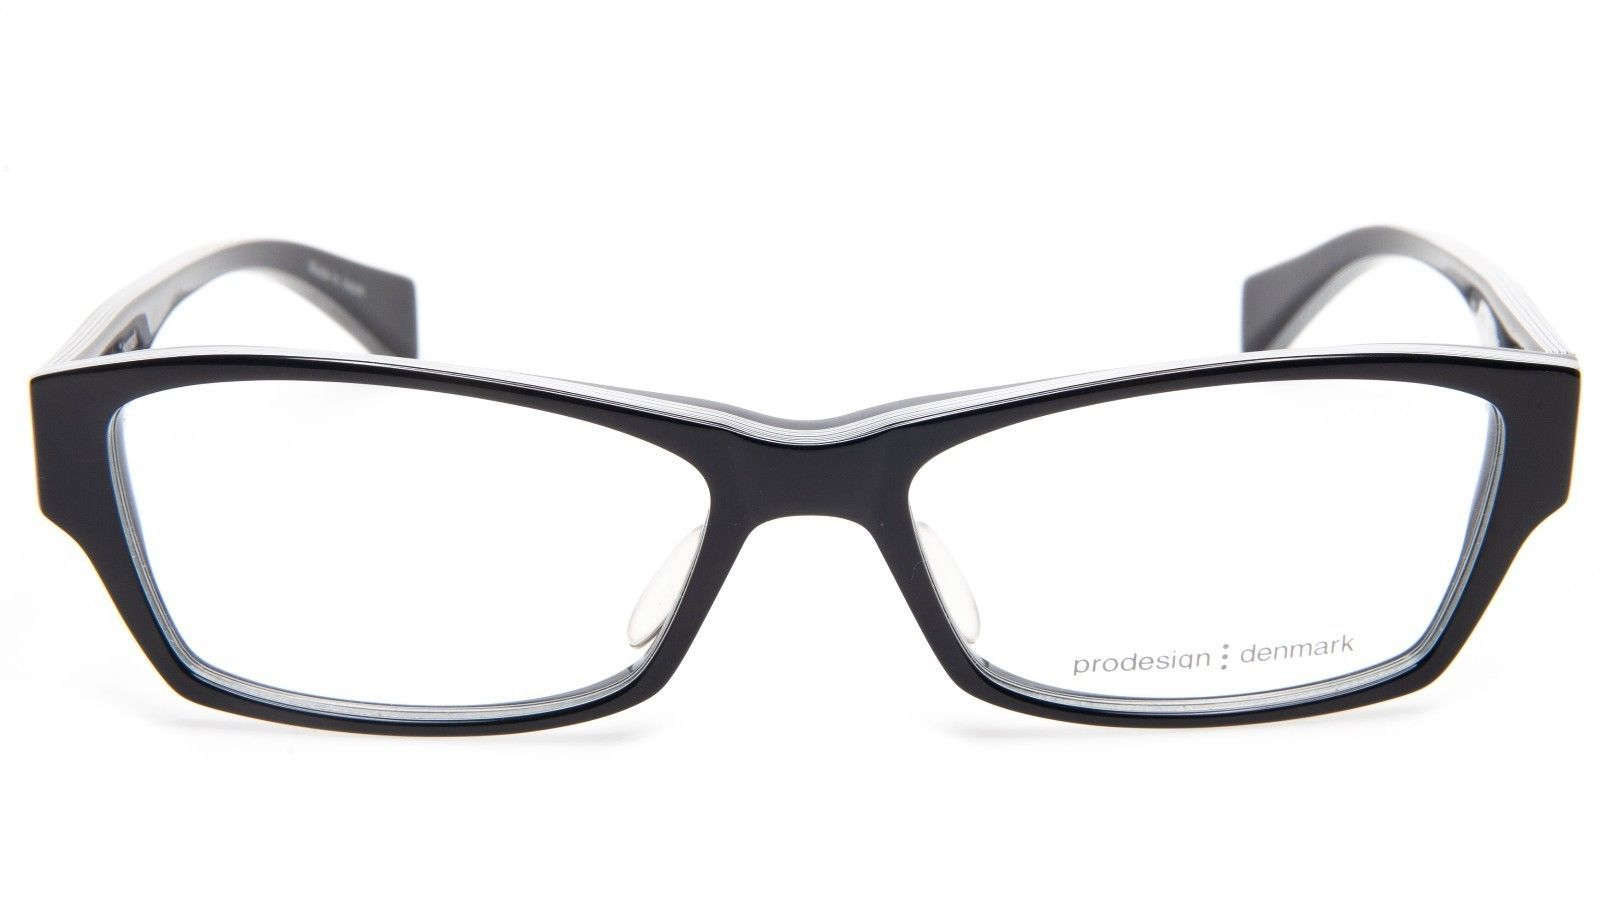 NEW PRODESIGN DENMARK 4675 c.6022 BLACK EYEGLASSES FRAME 52-17-140 B31mm Japan